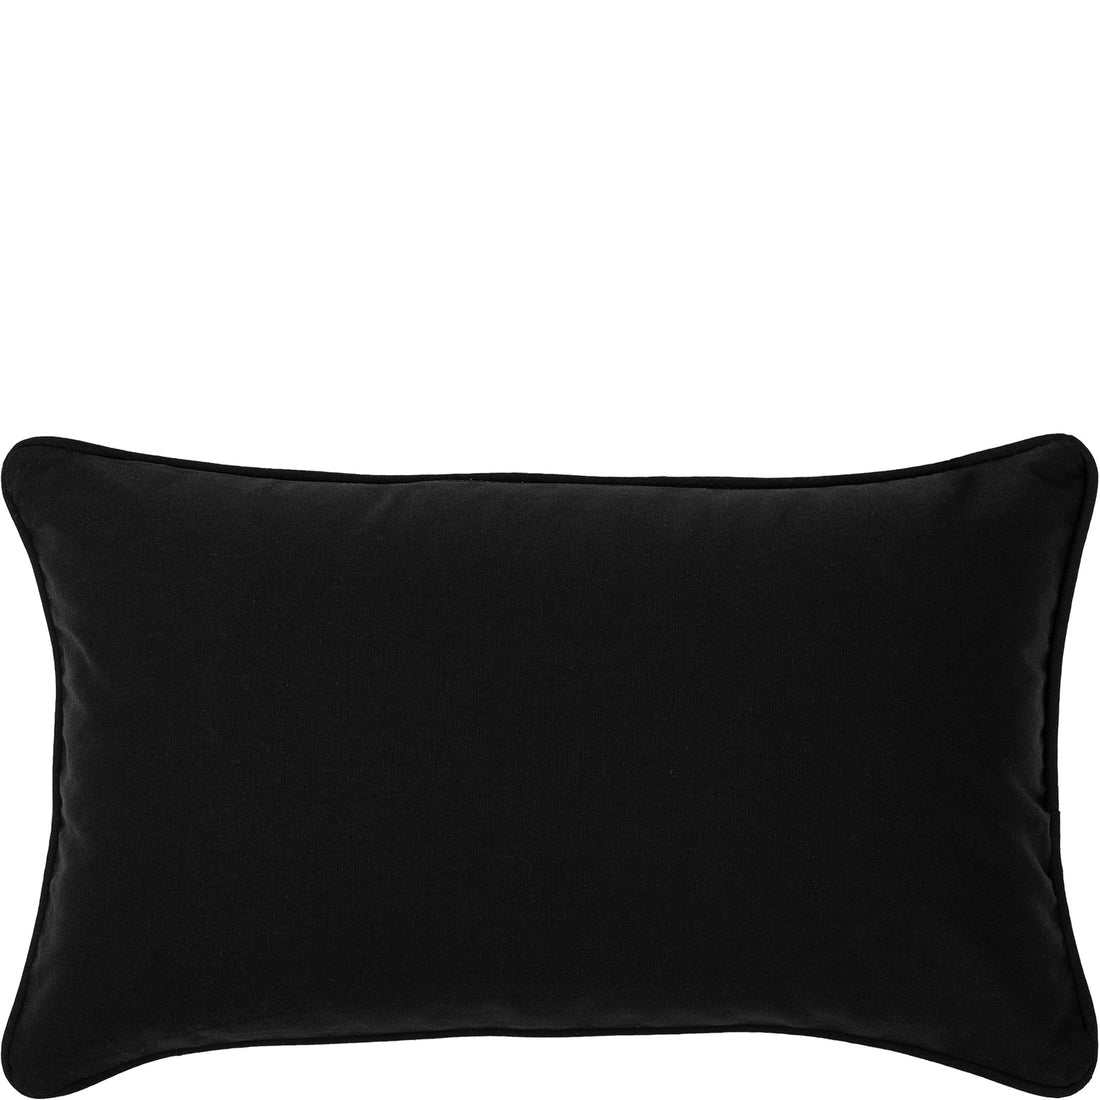 TANYA CARAVAGGIO Decorative Kidney Cushion